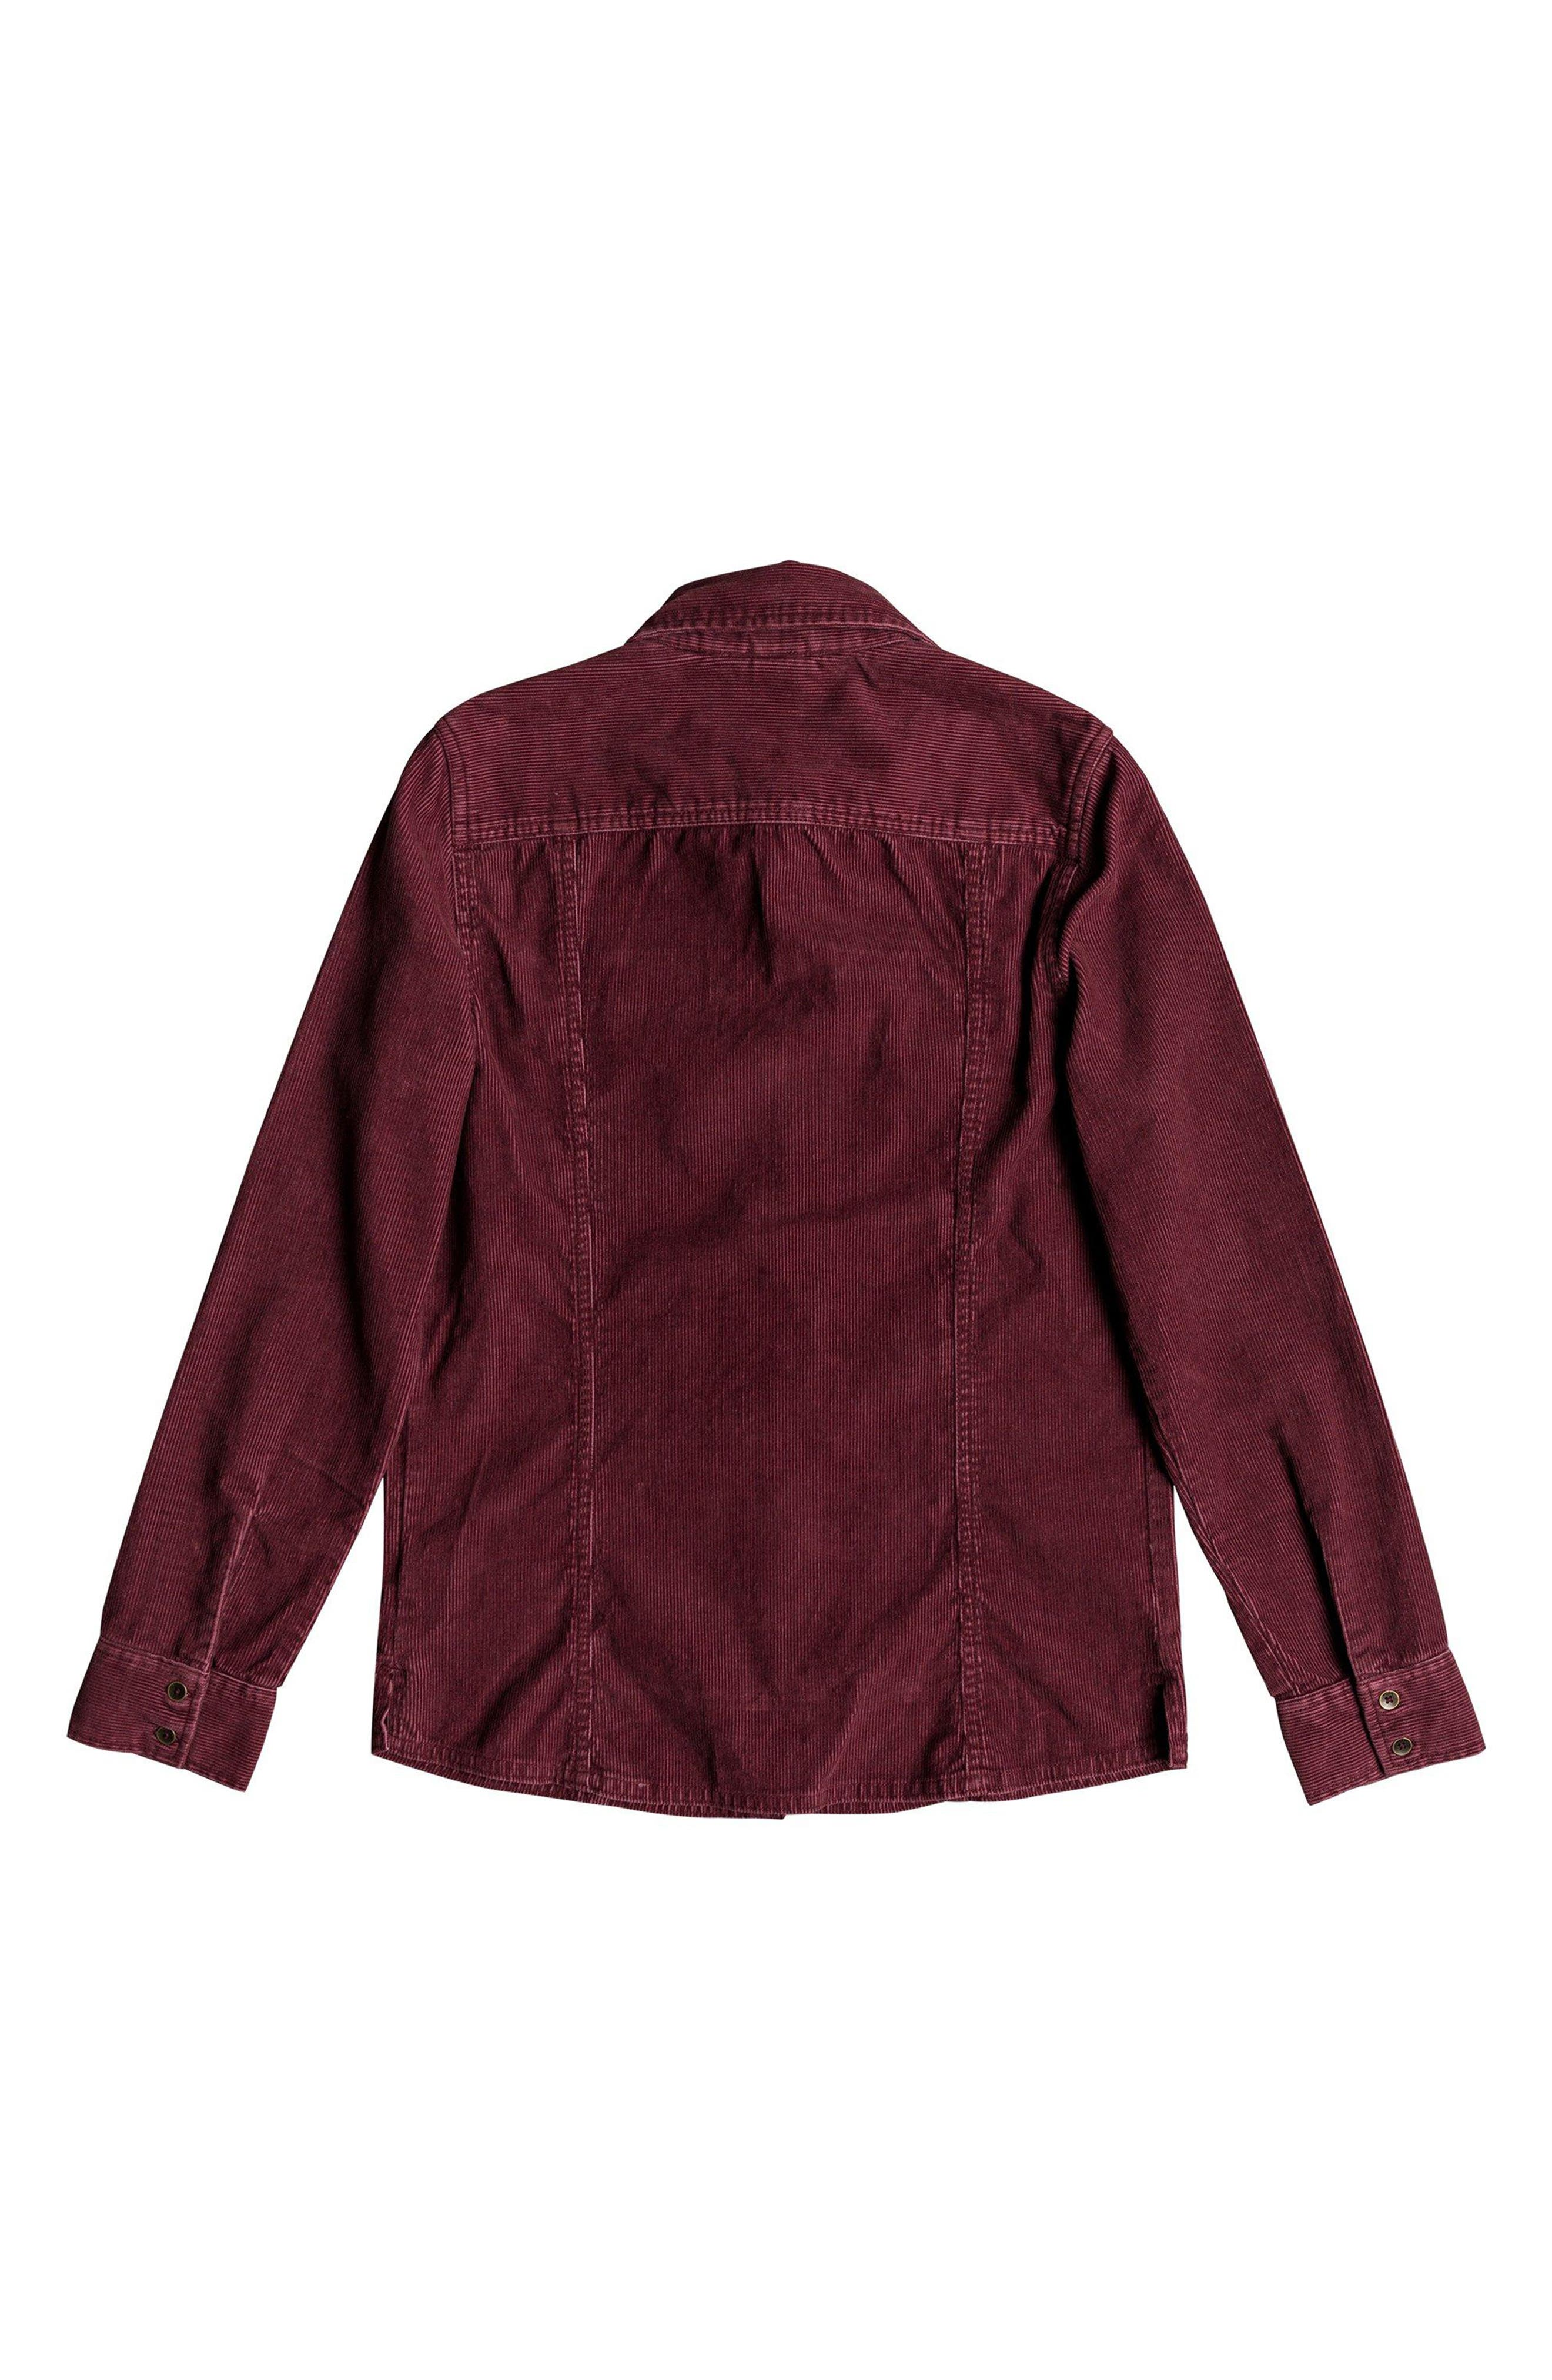 The Edge Of Wildness Corduroy Shirt,                             Alternate thumbnail 4, color,                             OXBLOOD RED